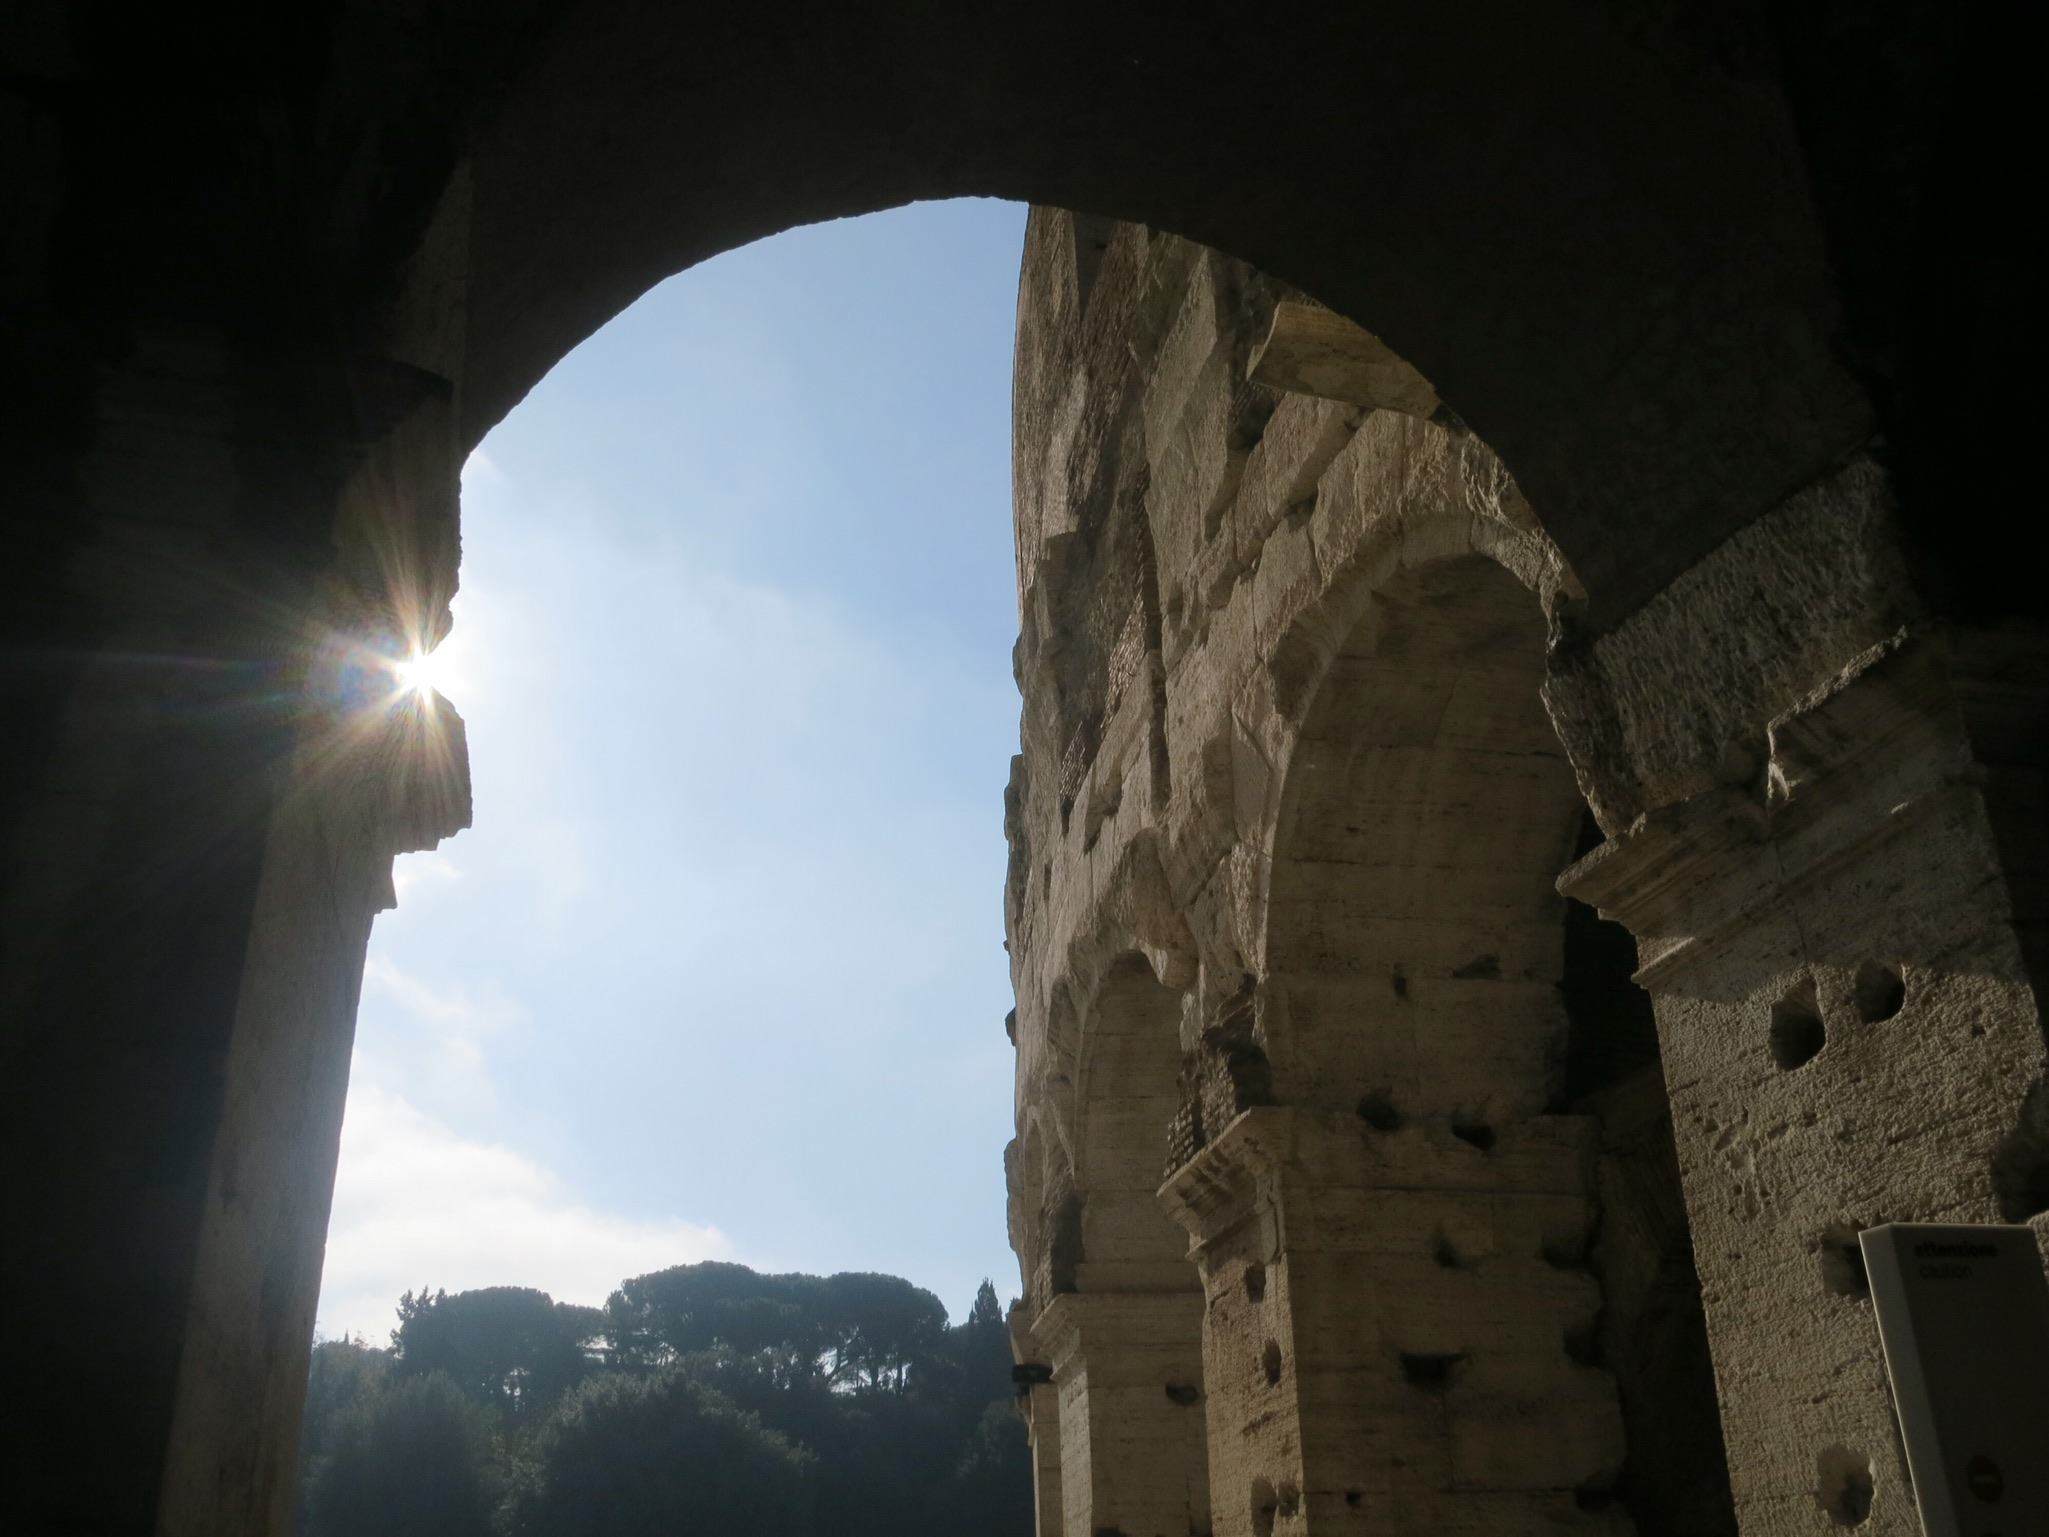 Arches frame beautiful views of the city throughout the Colosseum in Rome, Italy.